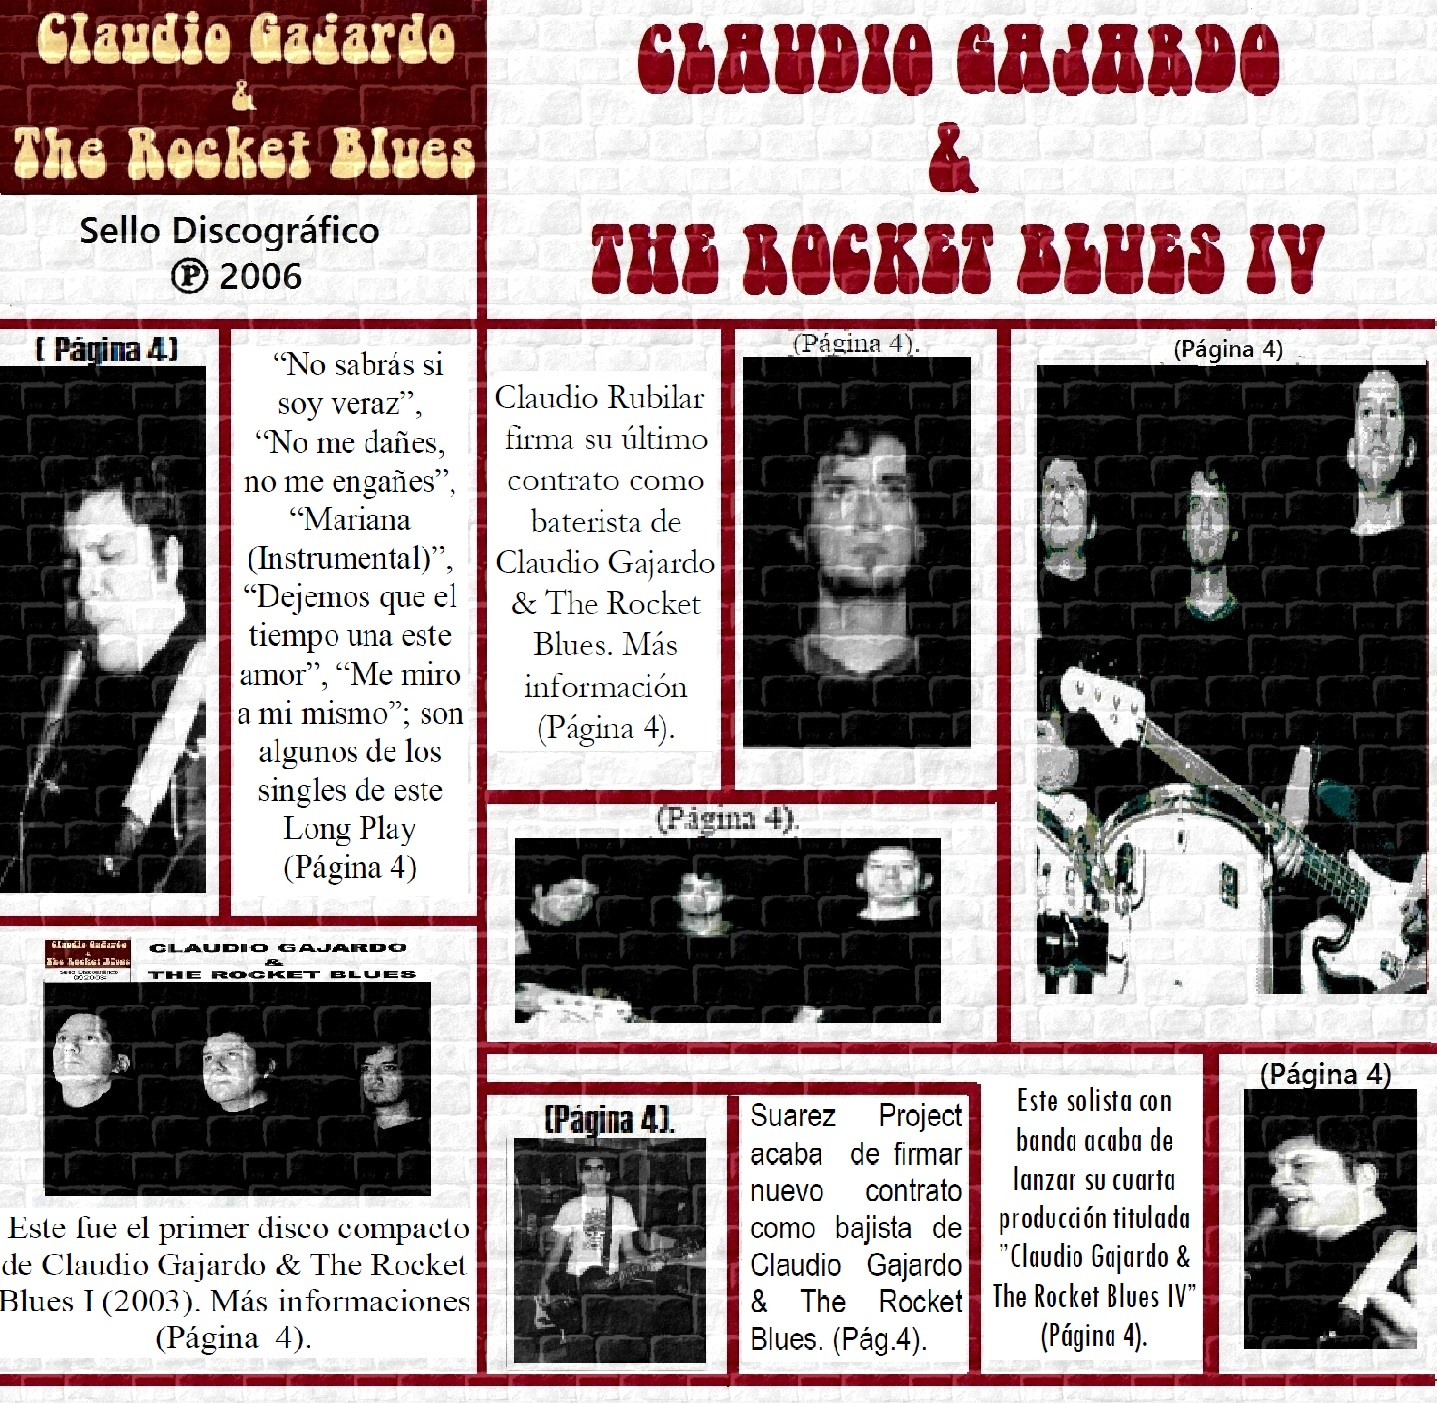 Carátula_de_Claudio_Gajardo_&_The_Rocket_Blues_IV_(2006)1